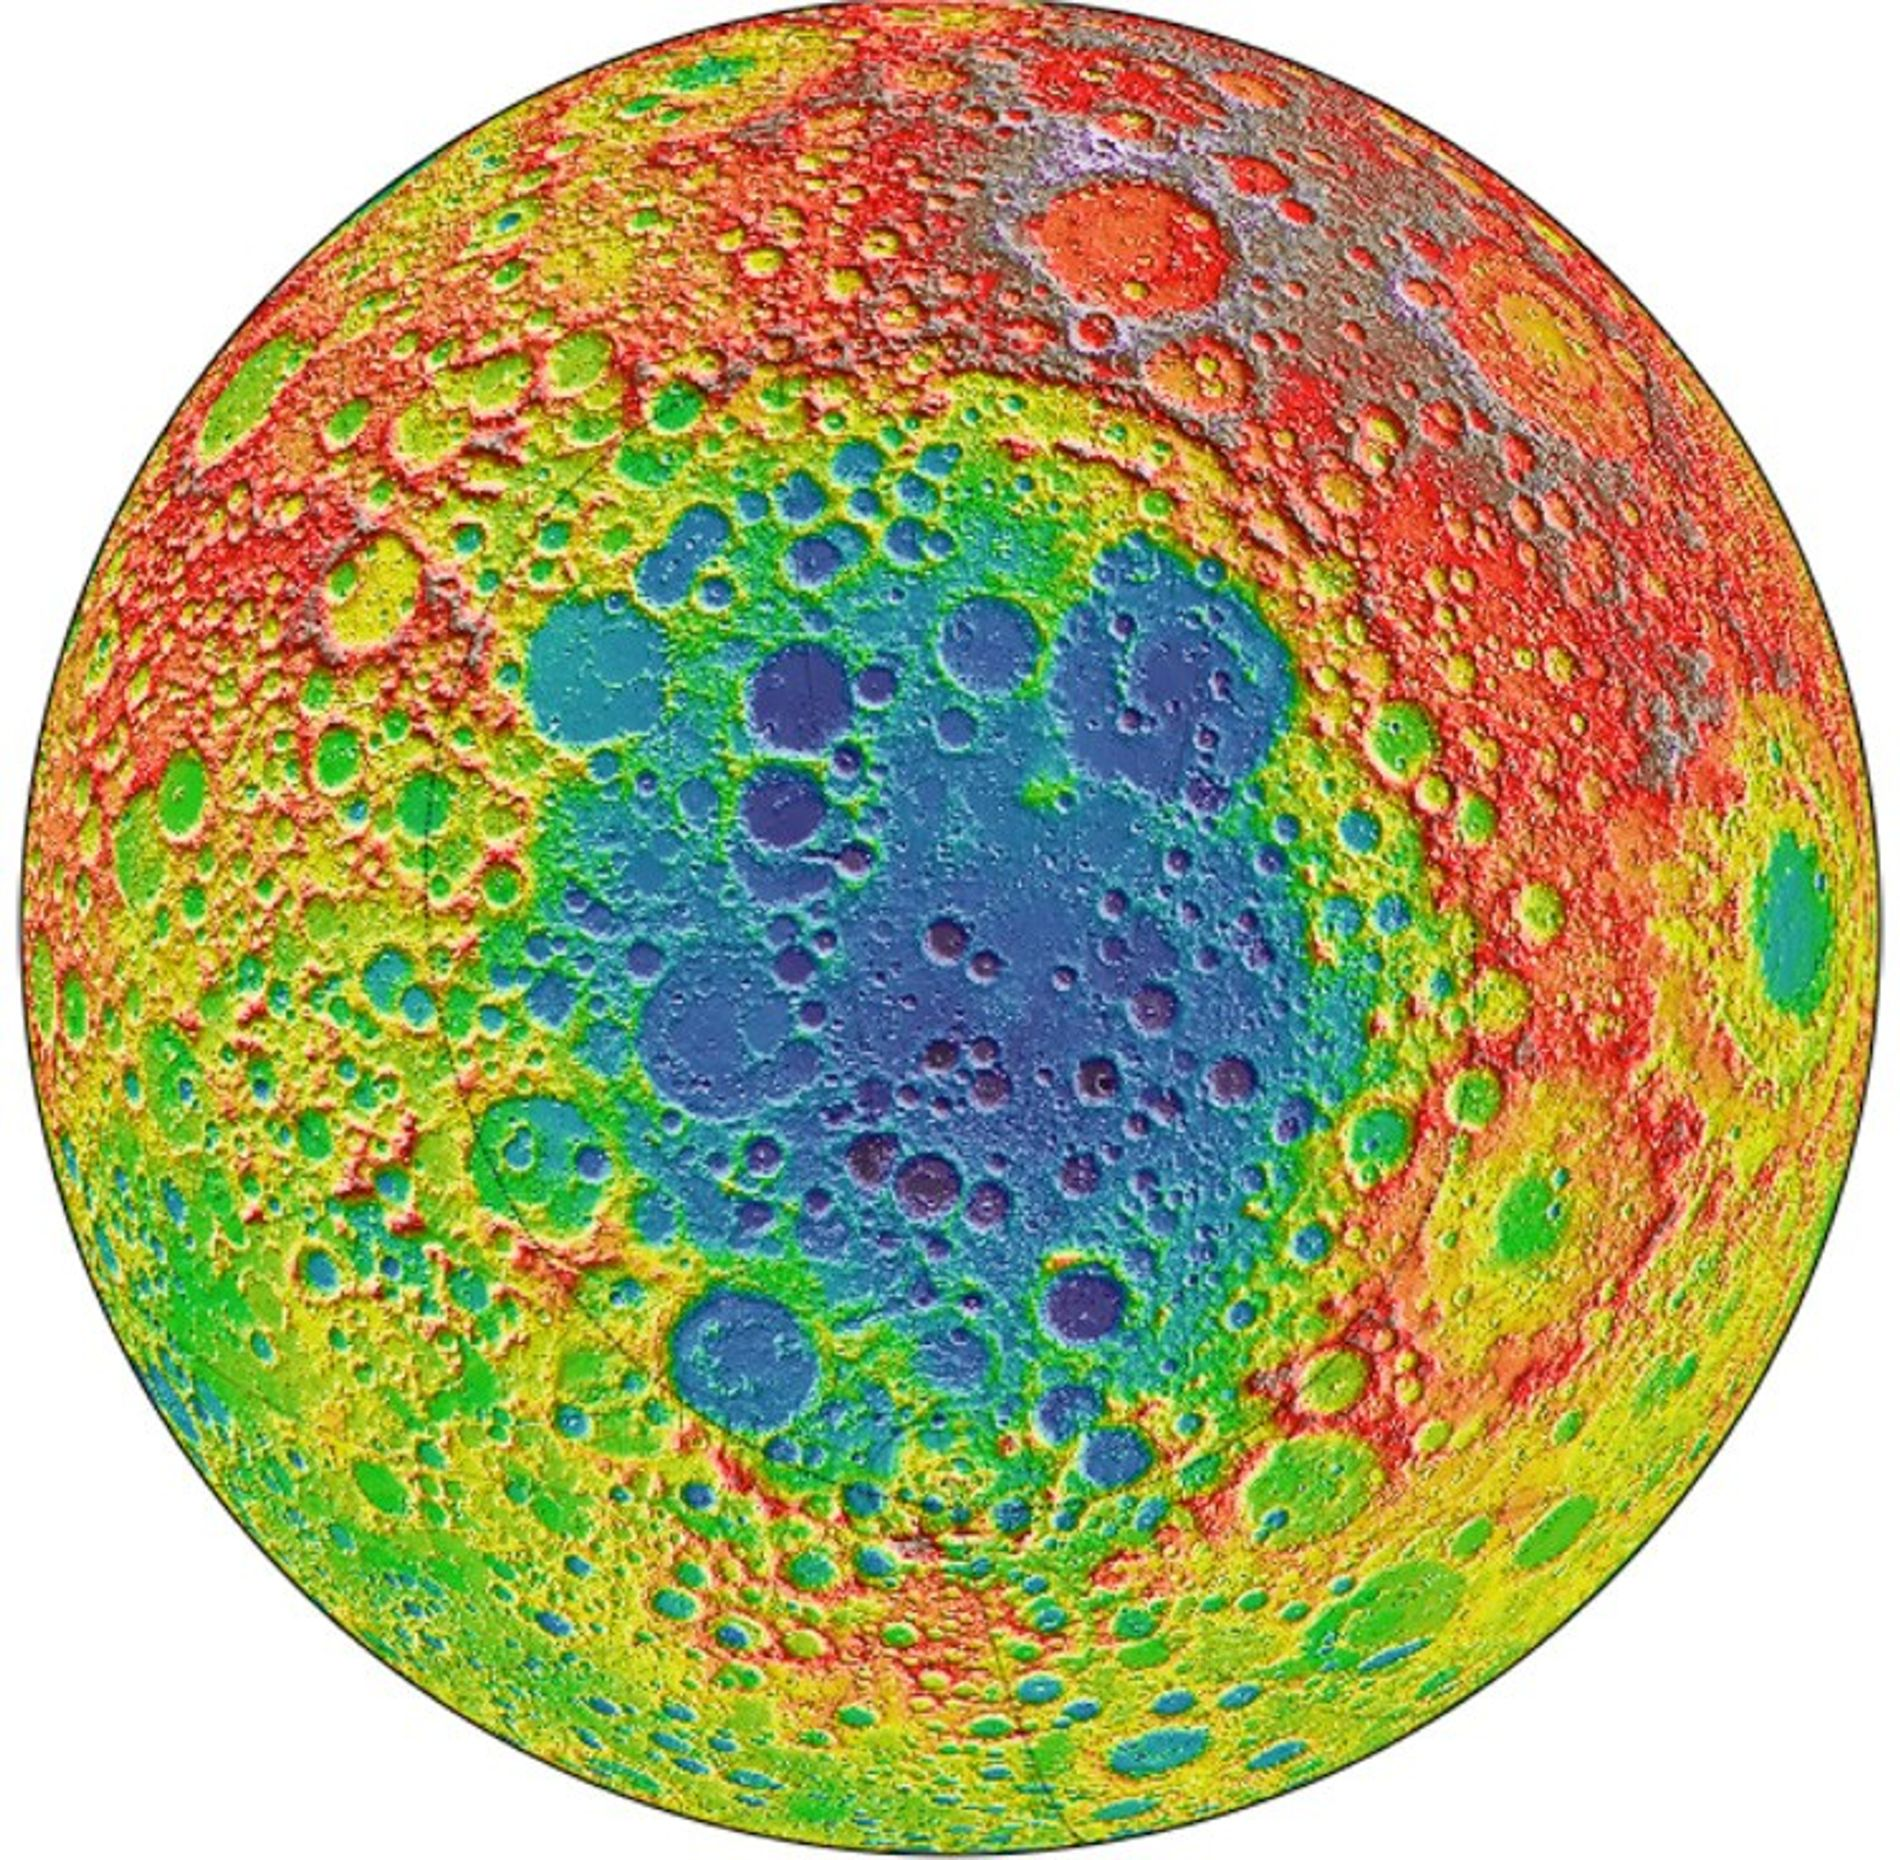 This image from NASA's Lunar Reconnaissance Orbiter centers on the South Pole-Aitken basin, the largest impact basin on the moon and one of the largest in the solar system. The distance from its depths to the tops of the highest surrounding peaks is nearly 10 miles.